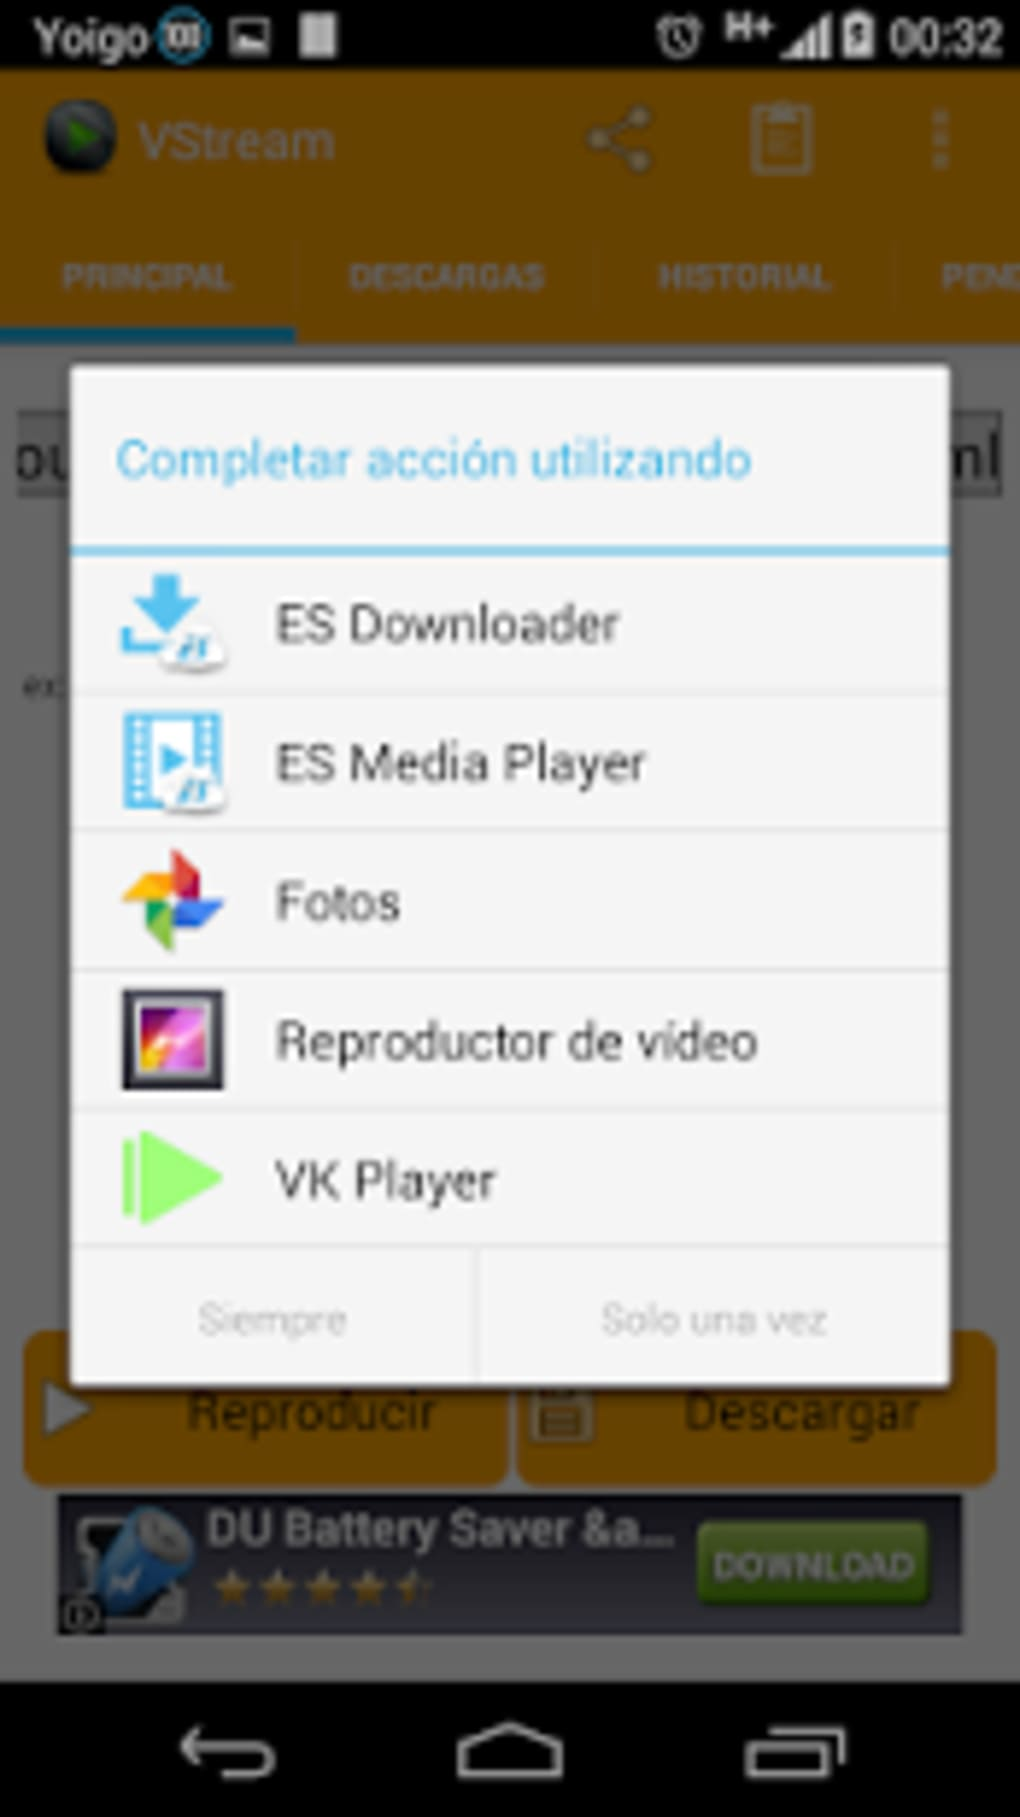 VK Player Video HD FLV MP4 MKV for Android - Download